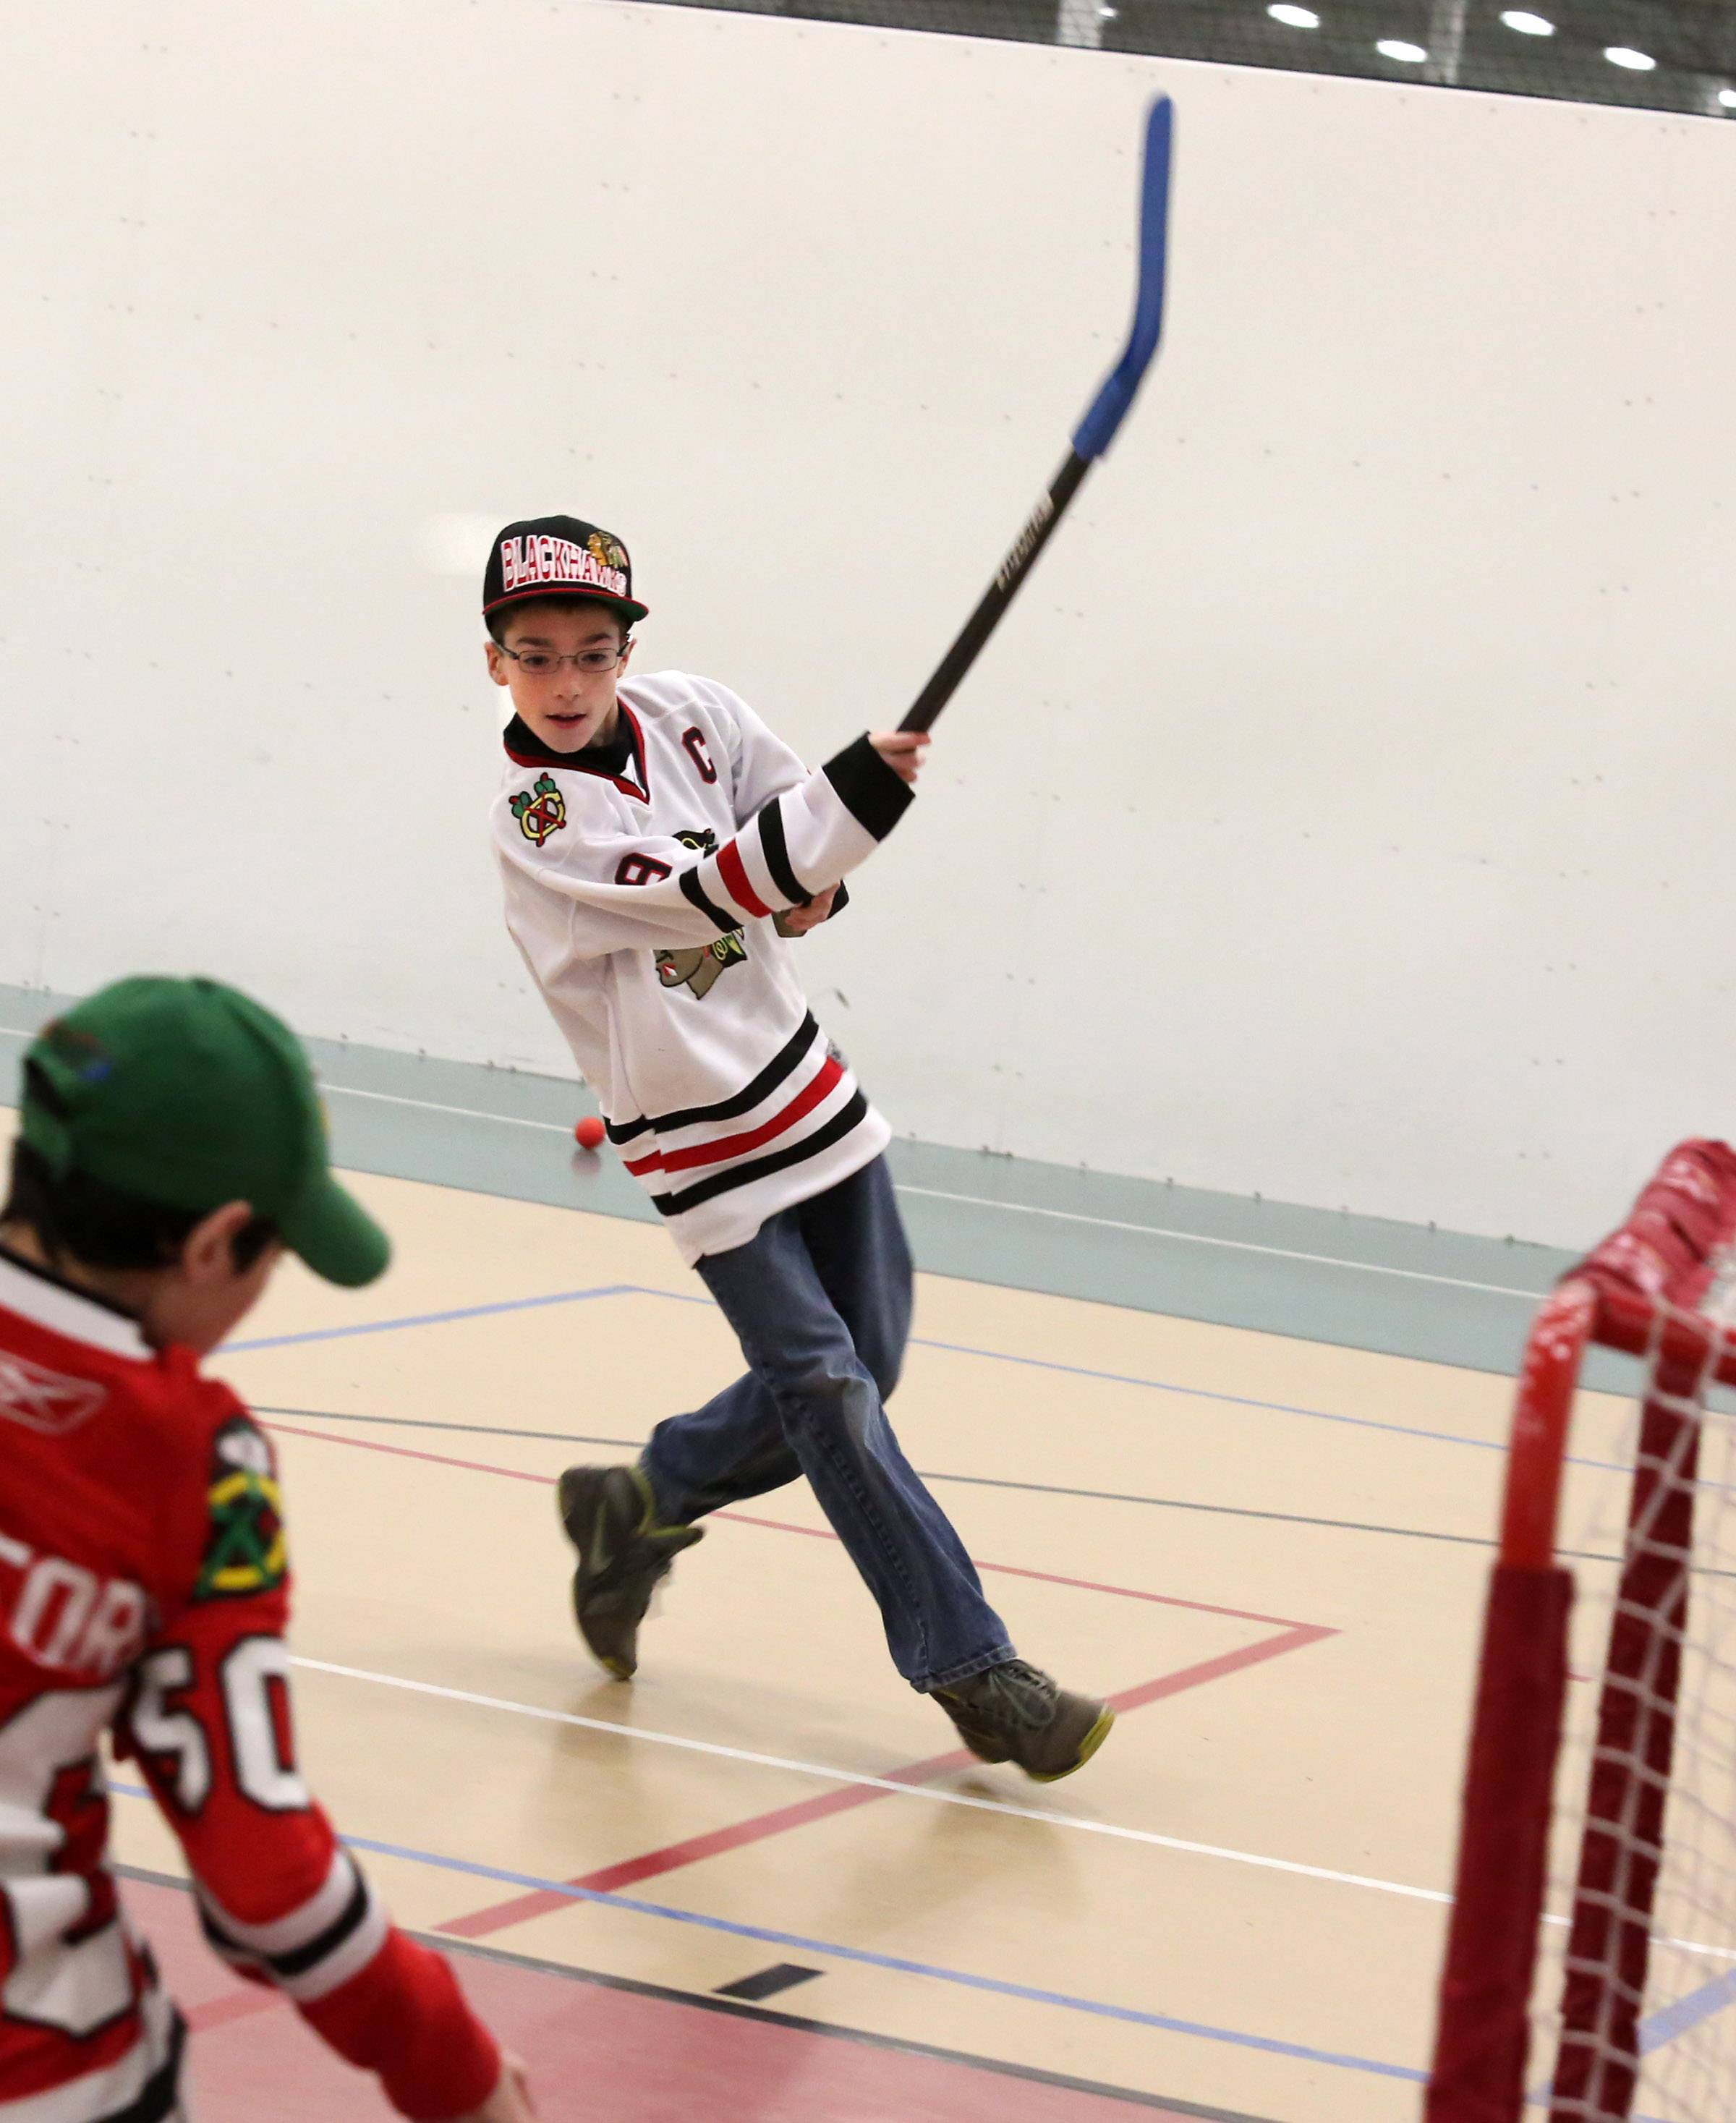 Bradley Hemmer, 11, of Lindenhurst starts his celebration after scoring a goal Friday at the Libertyville Sports Complex.